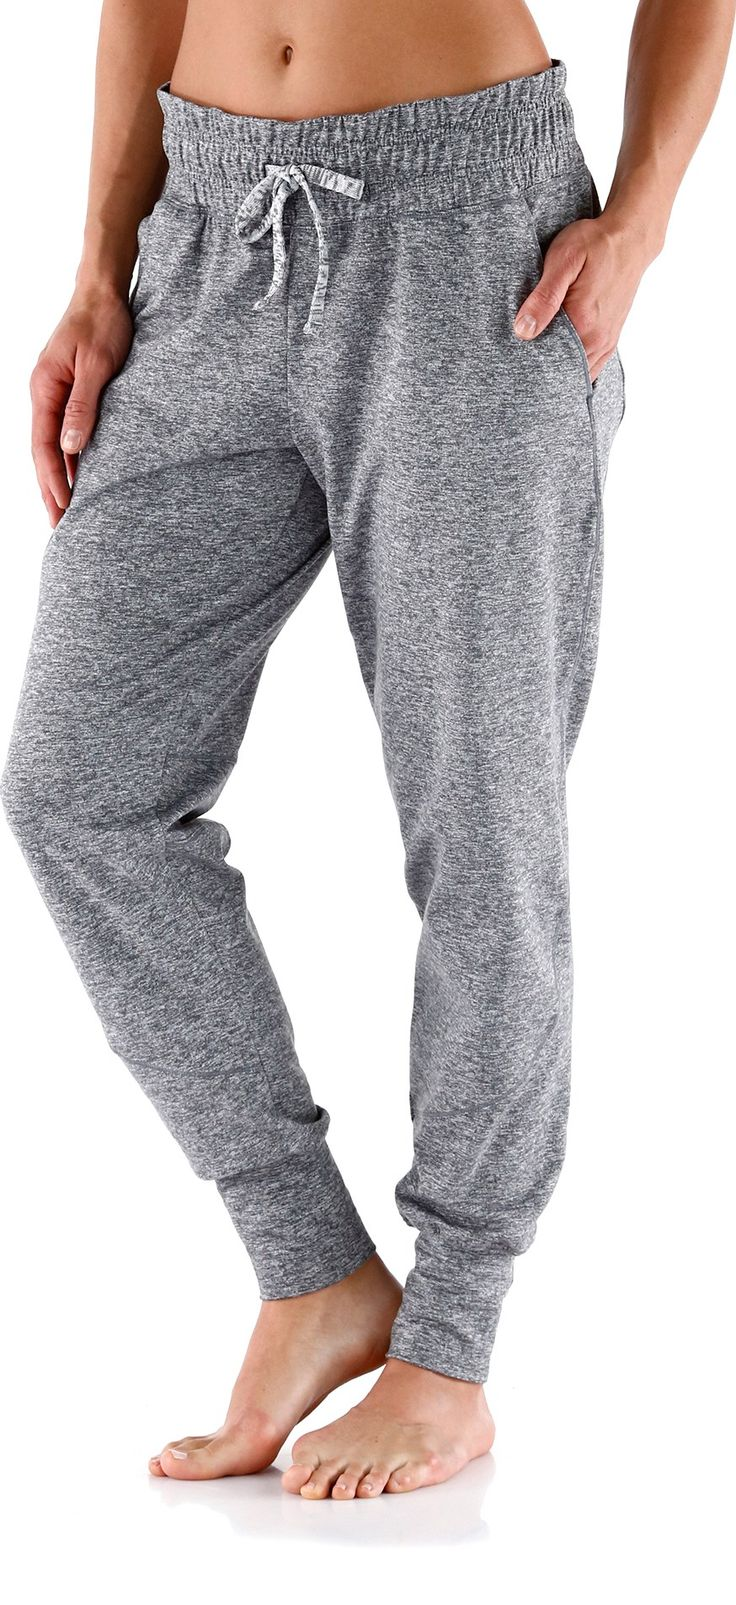 These are the BEST pants EVER!!  Comes in Reg and Petite.  REI Tech Pants - Women's Petite Sizes - REI.com